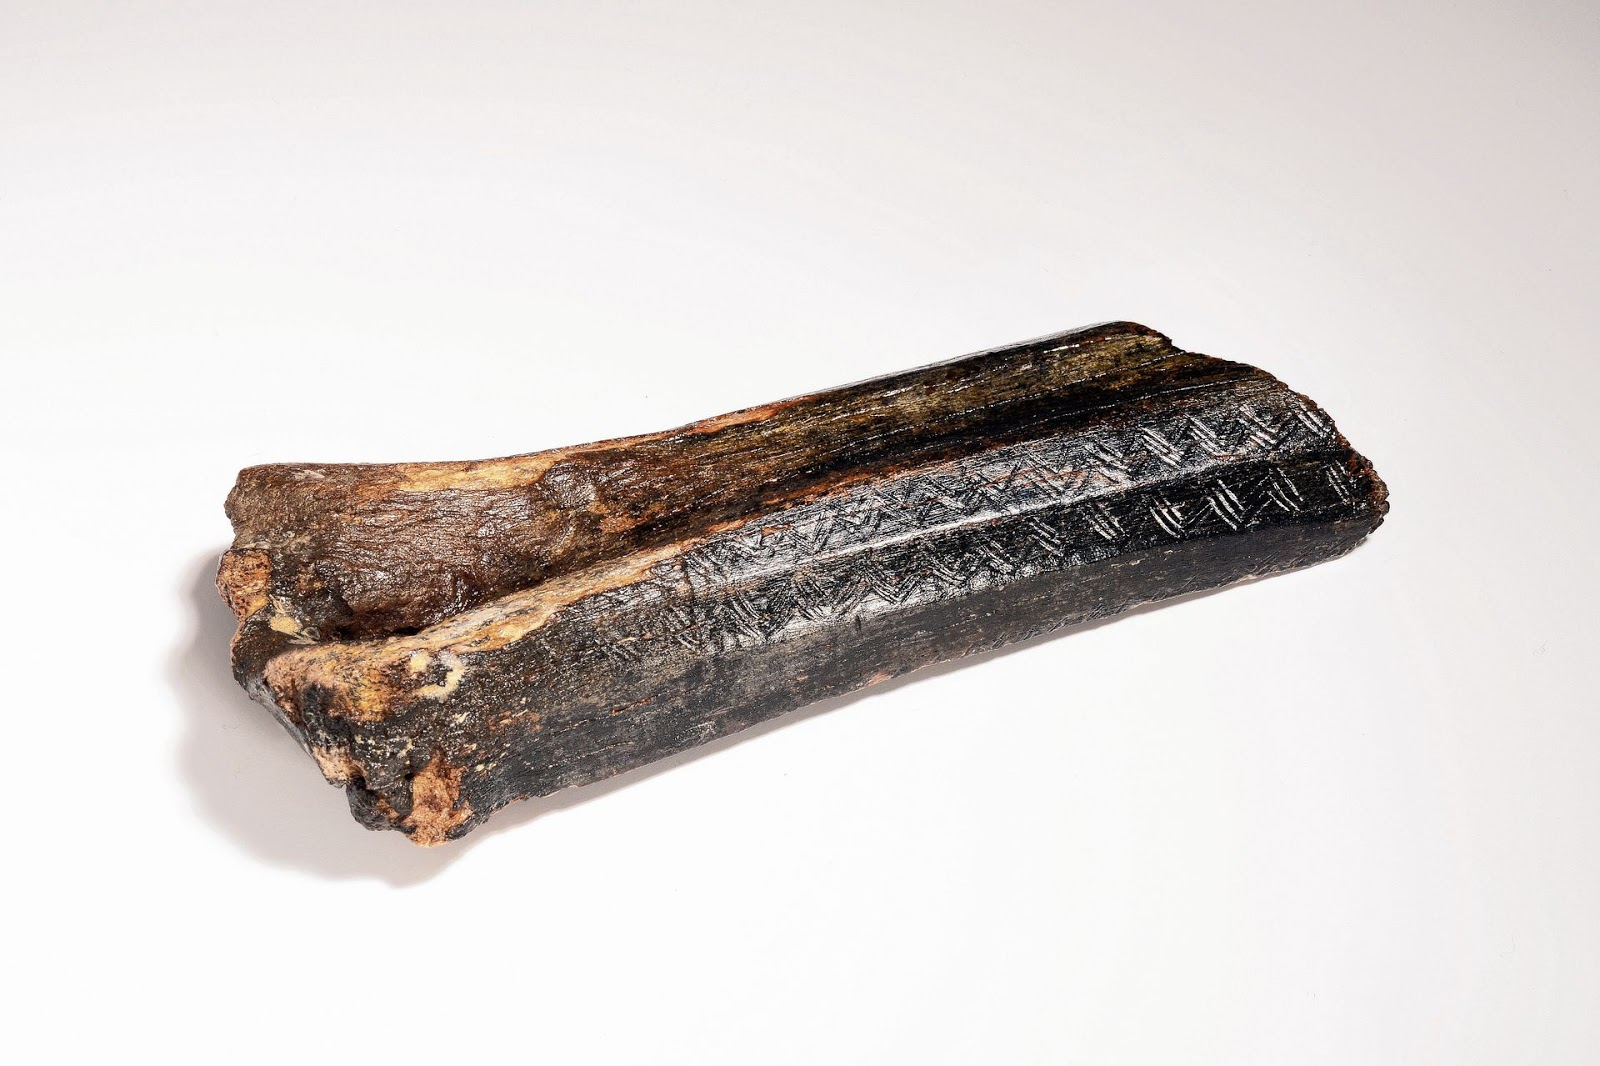 13 500 Year Old Carved Bison Bone Fished From The Bottom Of The North Sea The Archaeology News Network